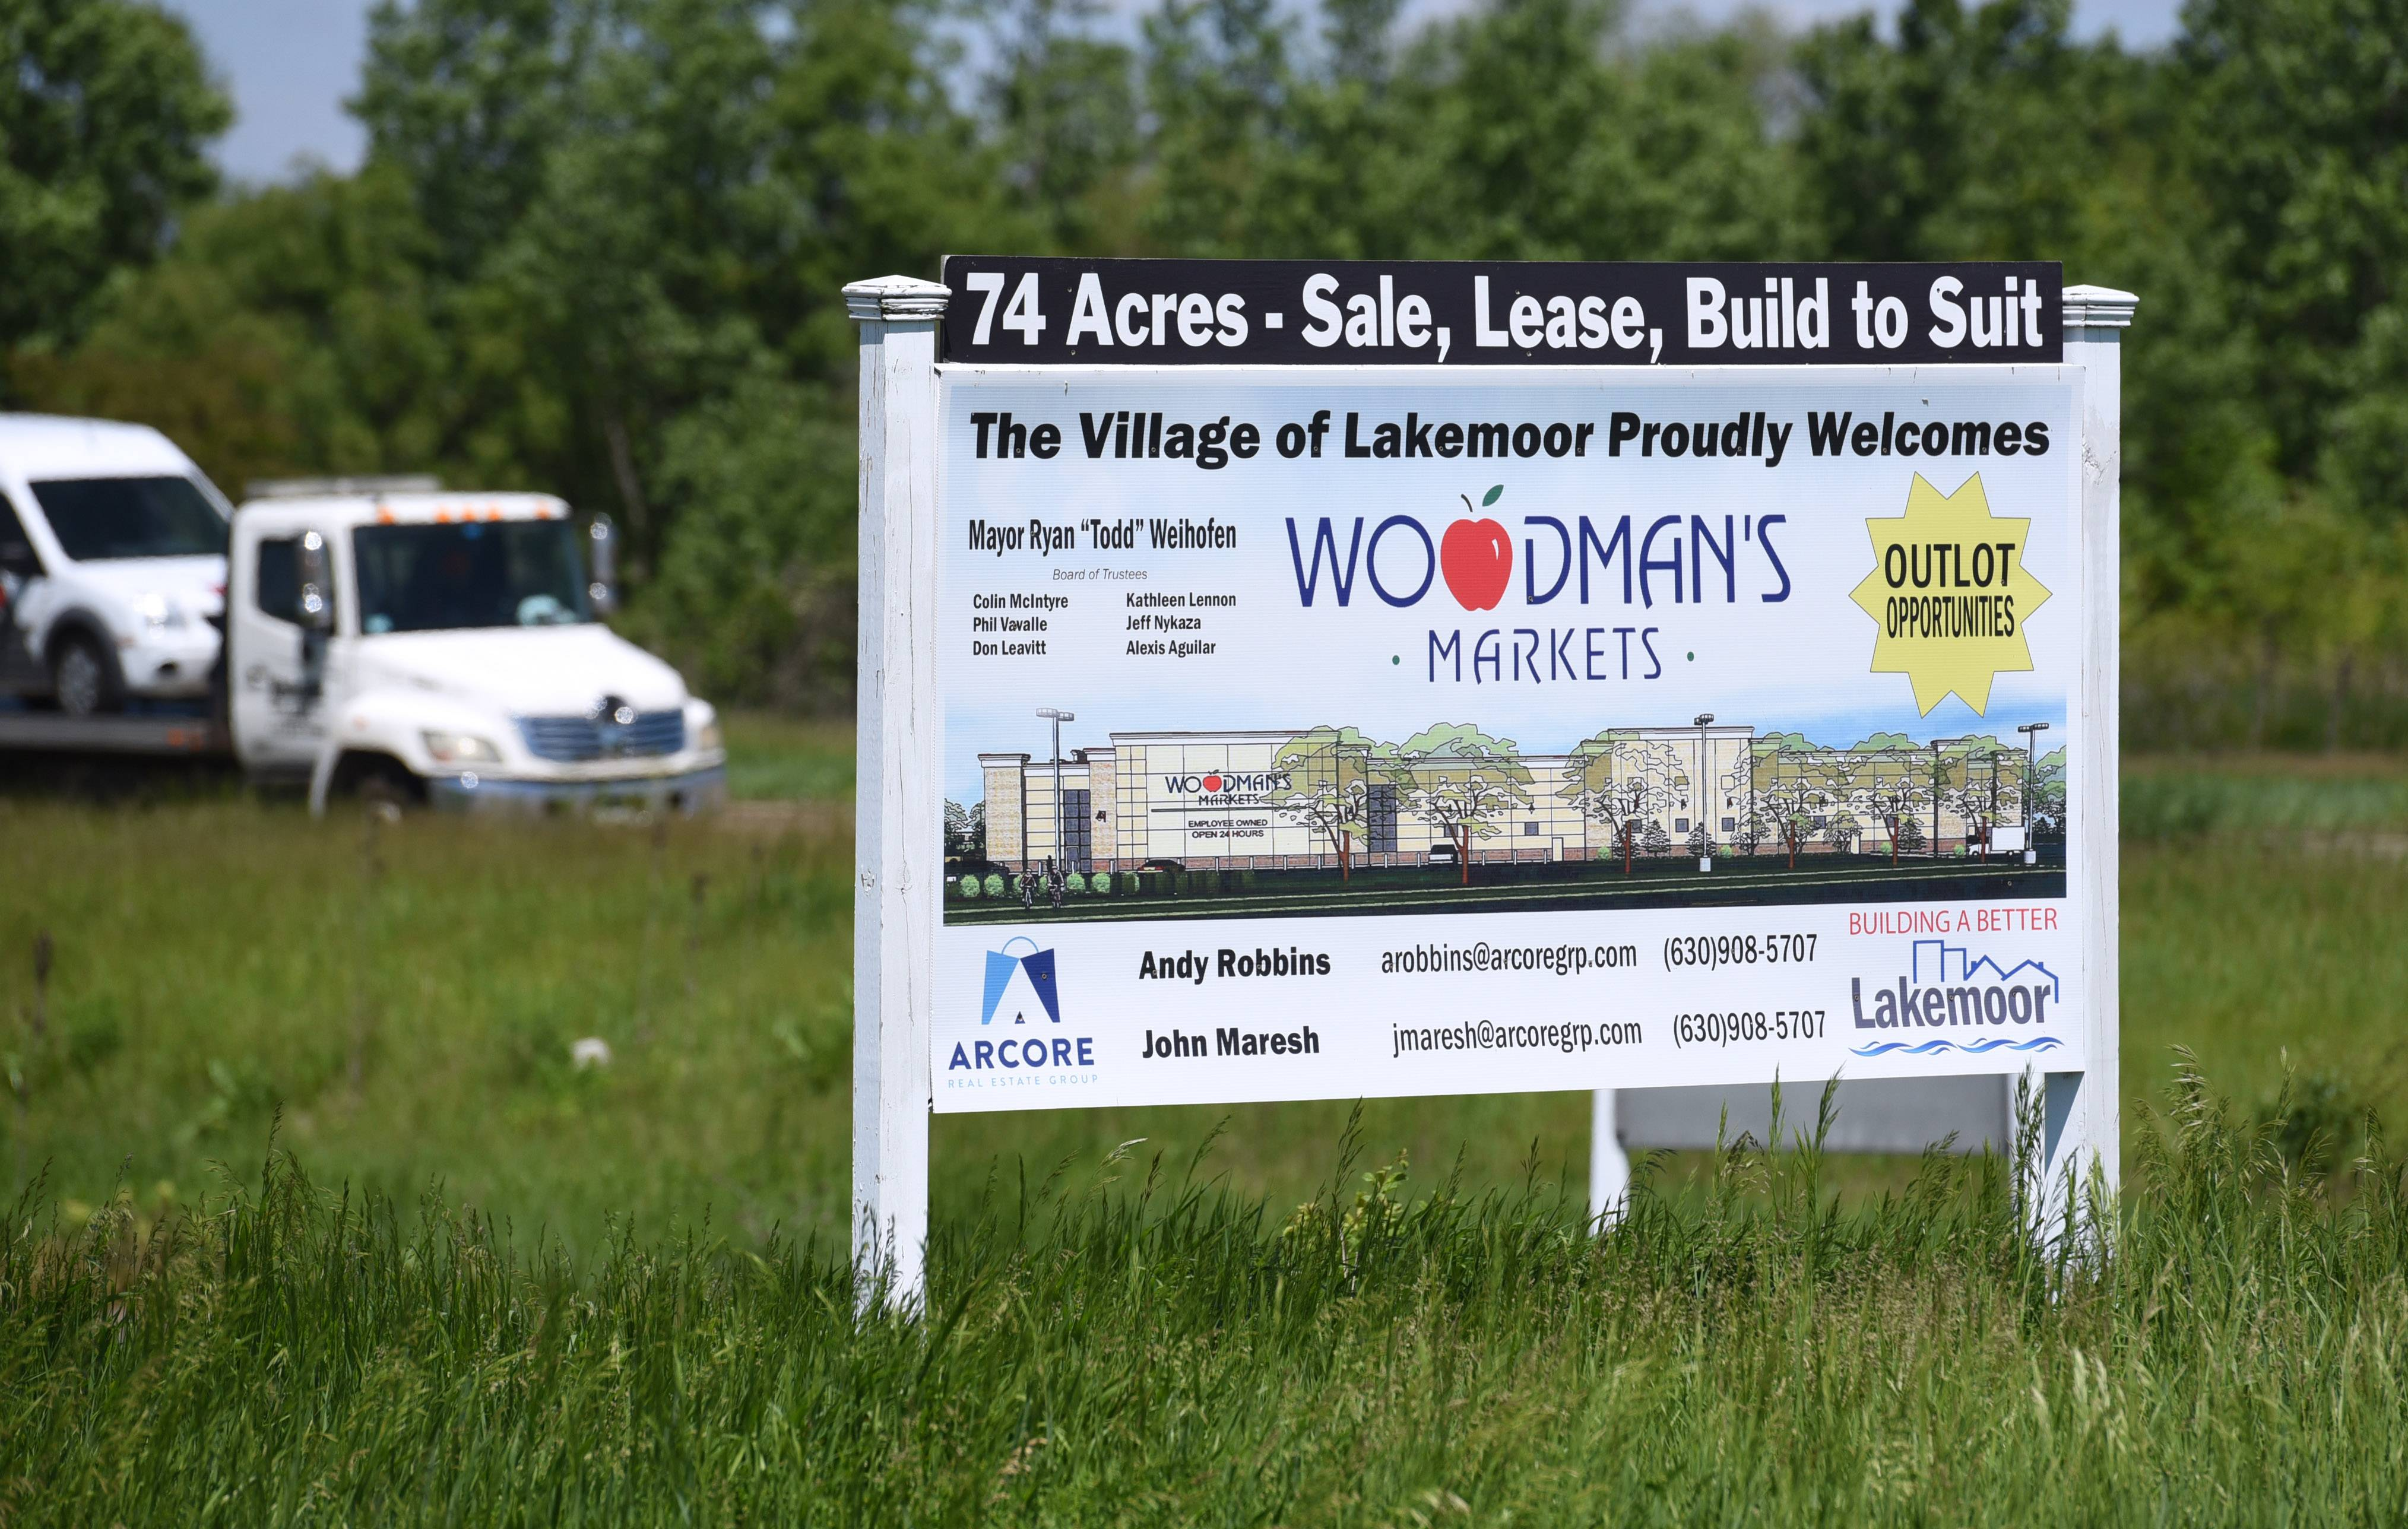 The site of a proposed Woodman's Food Market at the southwest corner of routes 12 and 120 in Lakemoor. After a groundbreaking ceremony over the weekend, work to prepare the site for development is underway.